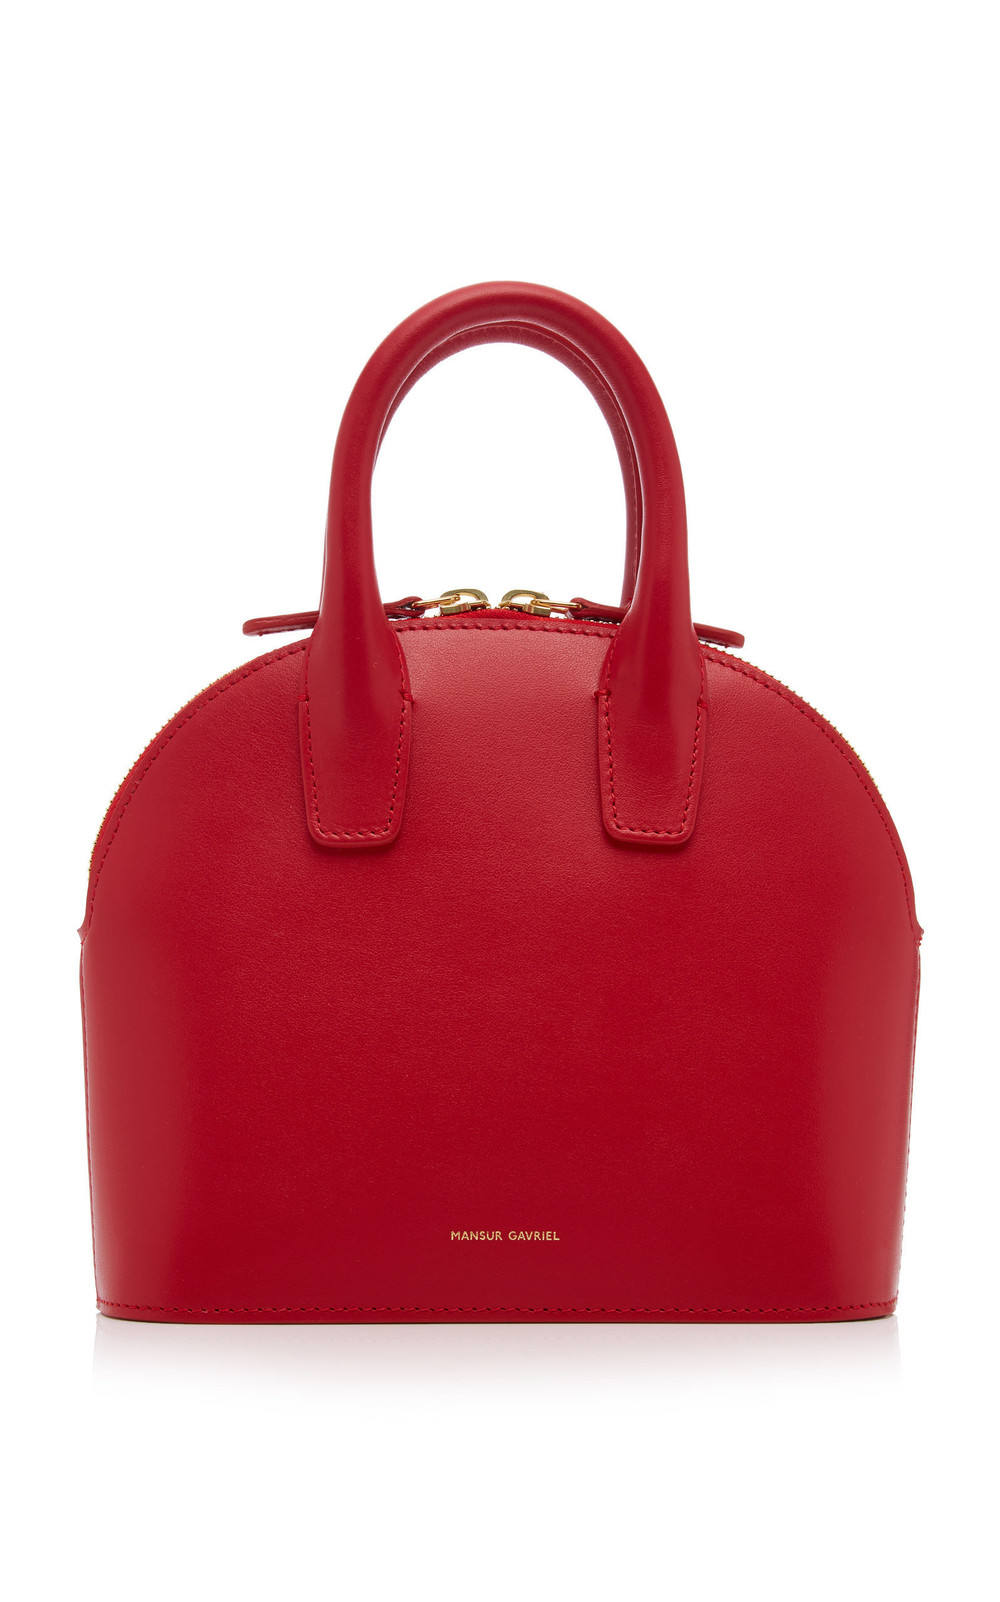 Mansur Gavriel Mini Leather Top Handle Bag in red